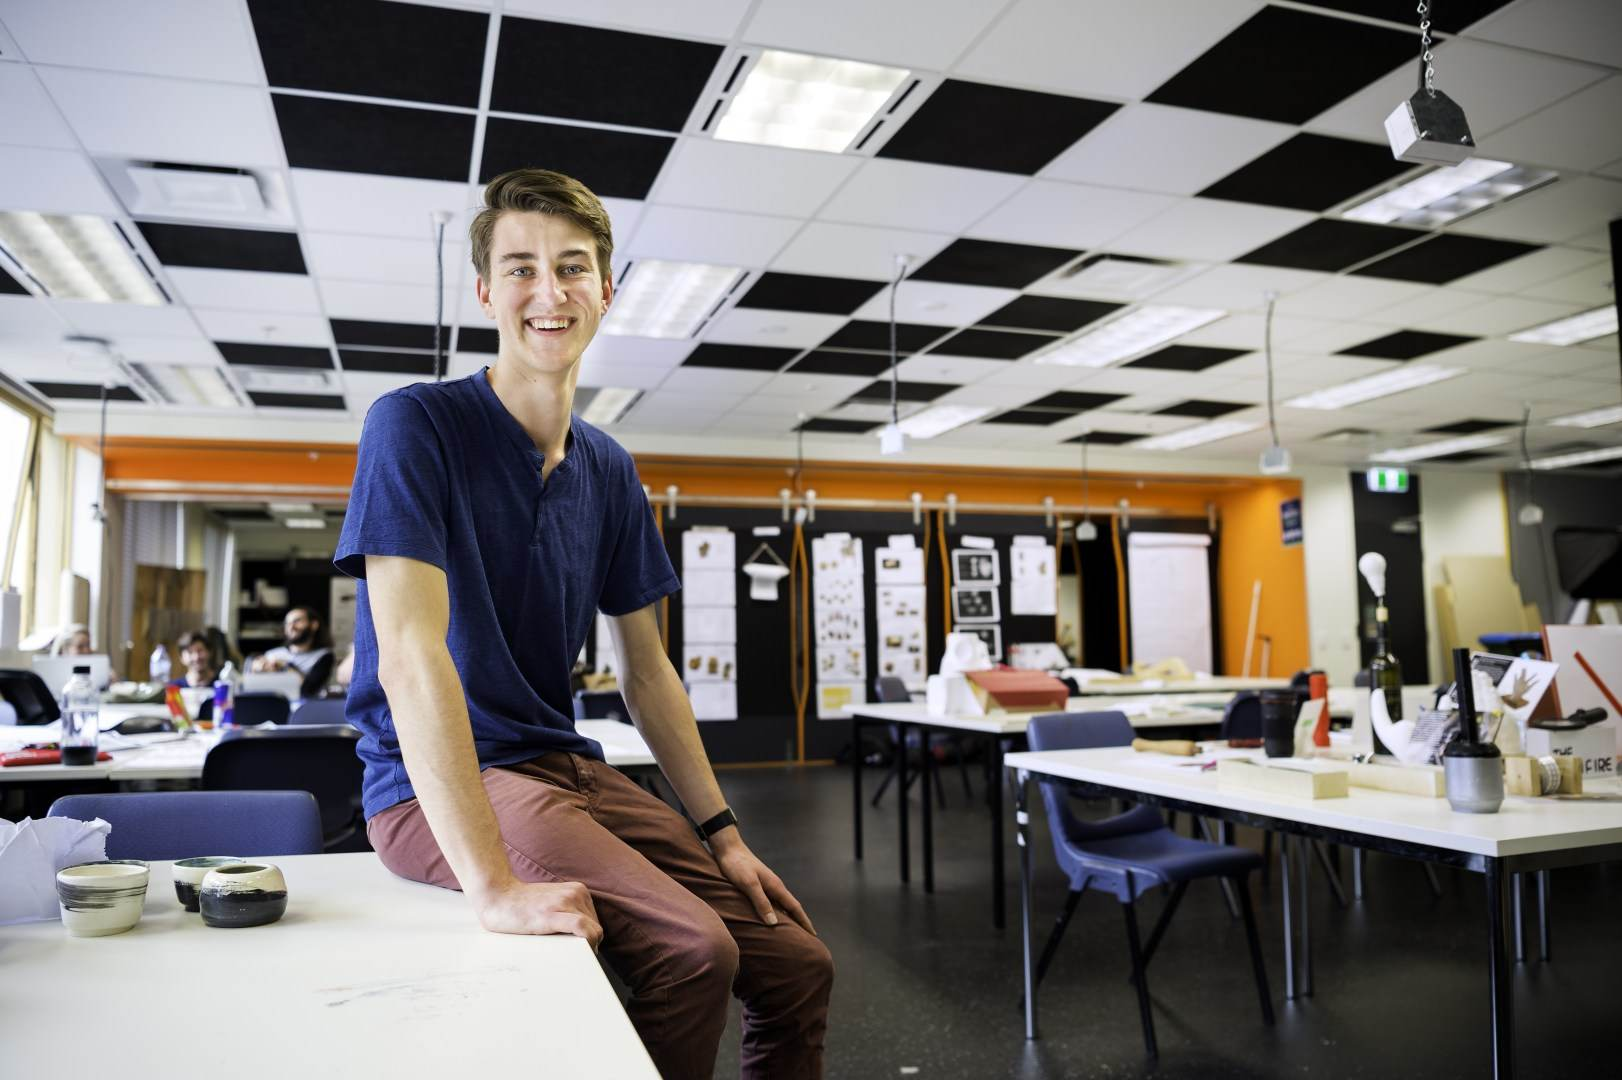 Study Design At The University Of South Australia